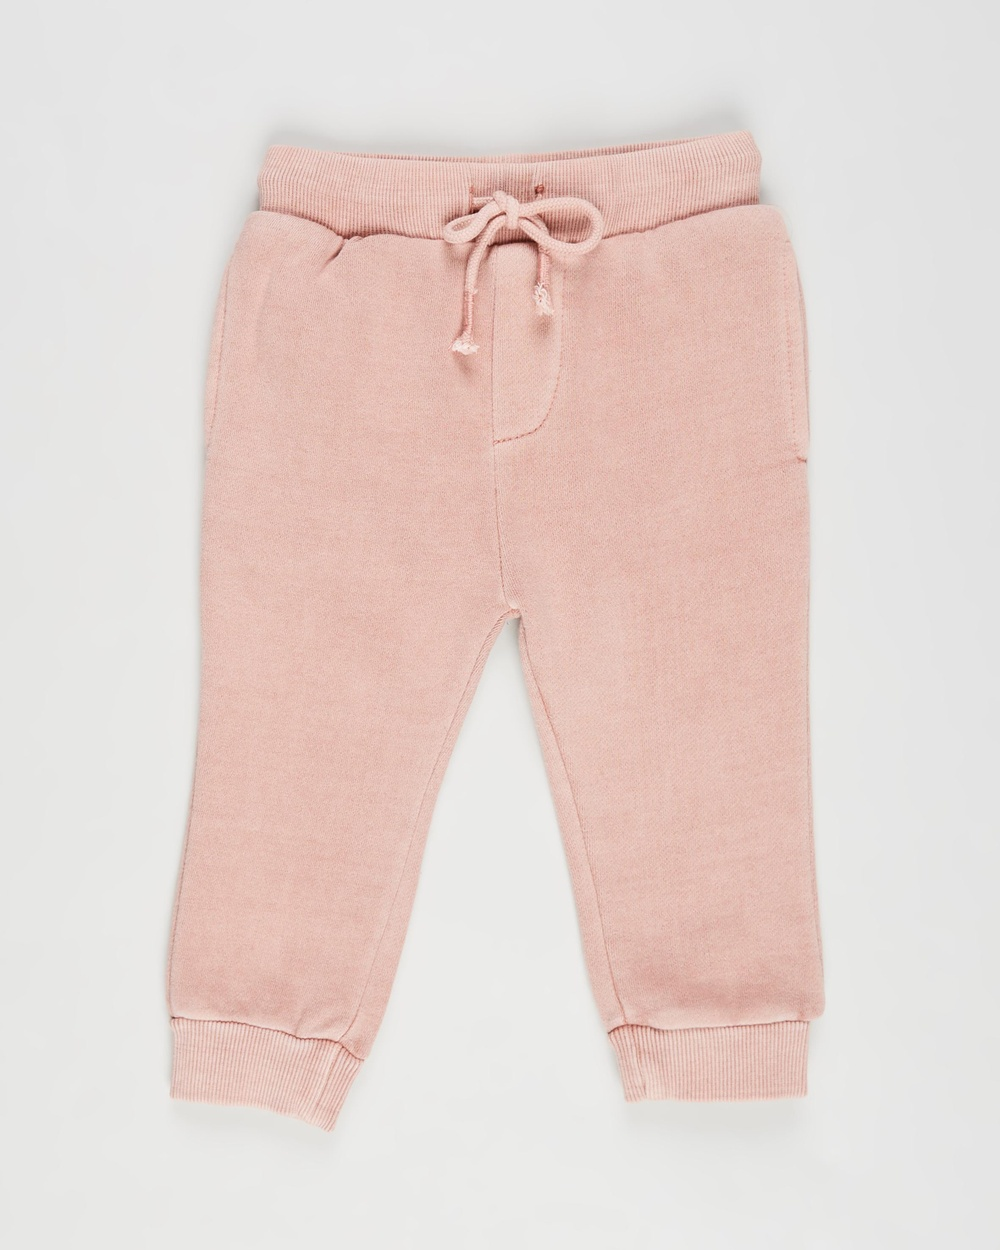 Animal Crackers Stand Out Pants Babies Sweatpants Pink